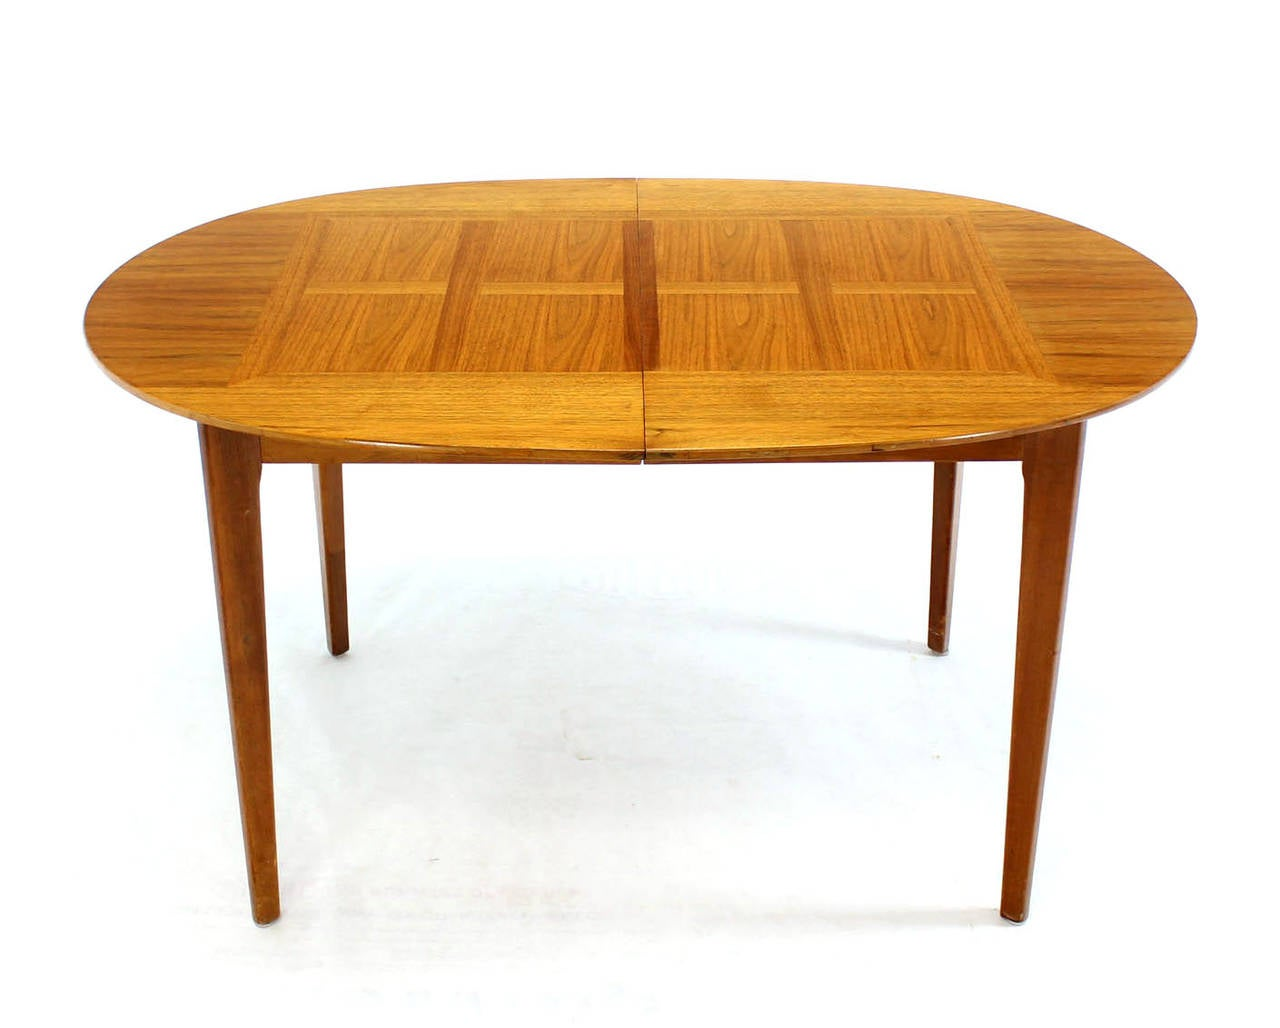 this mid century modern walnut oval dining table with three leaves is